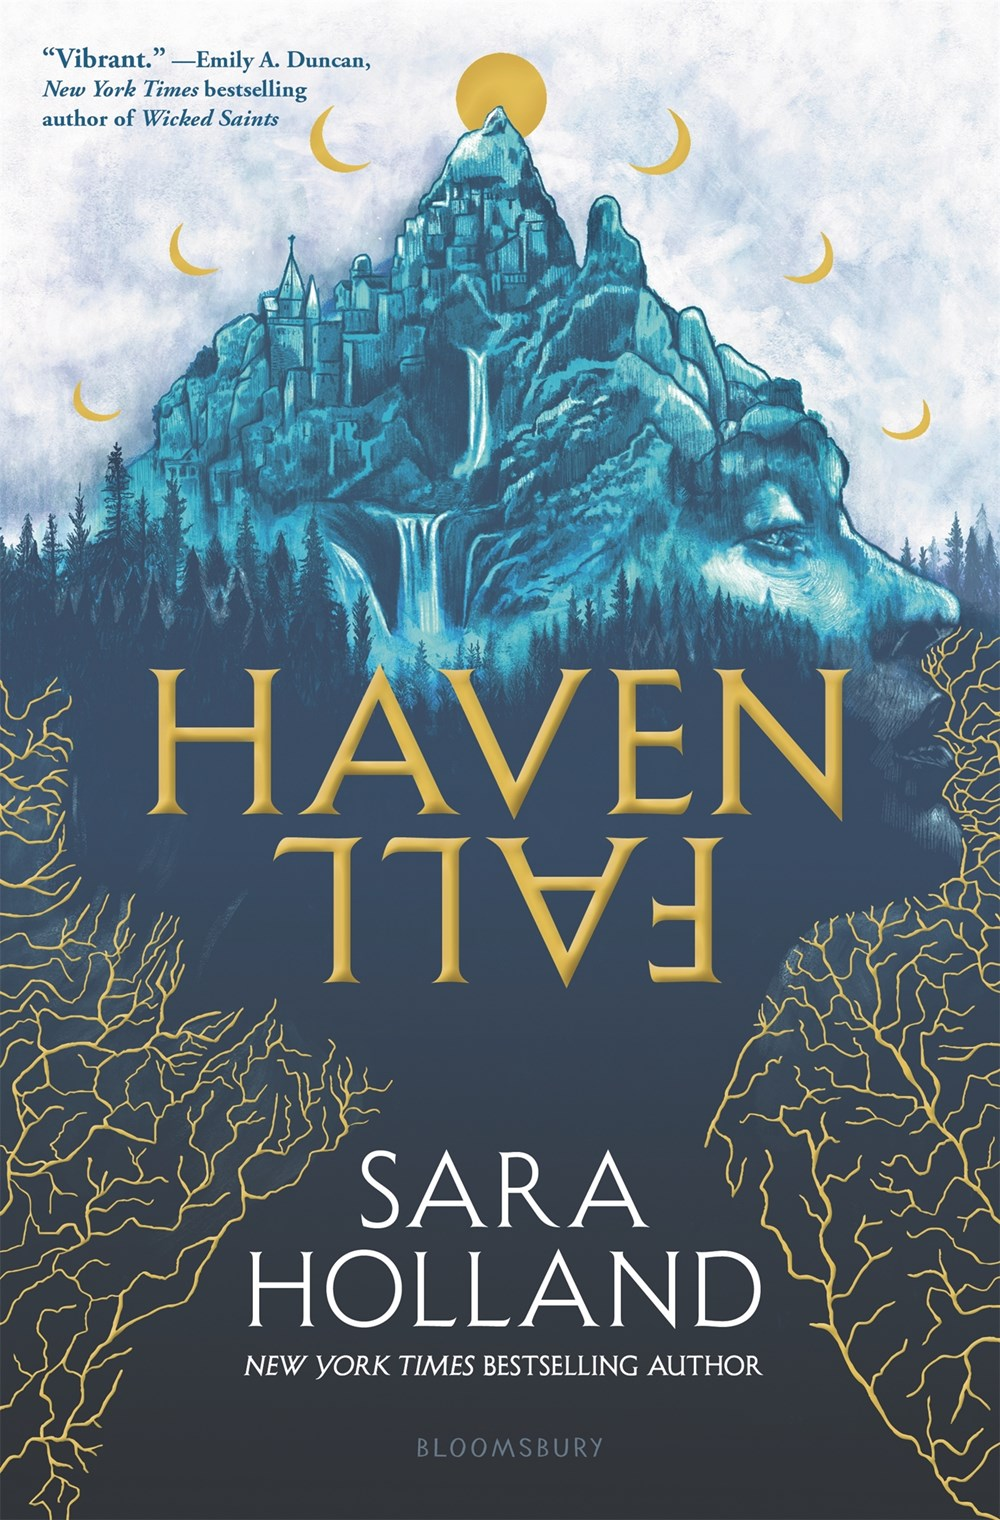 Image for Havenfall by Sara Holland